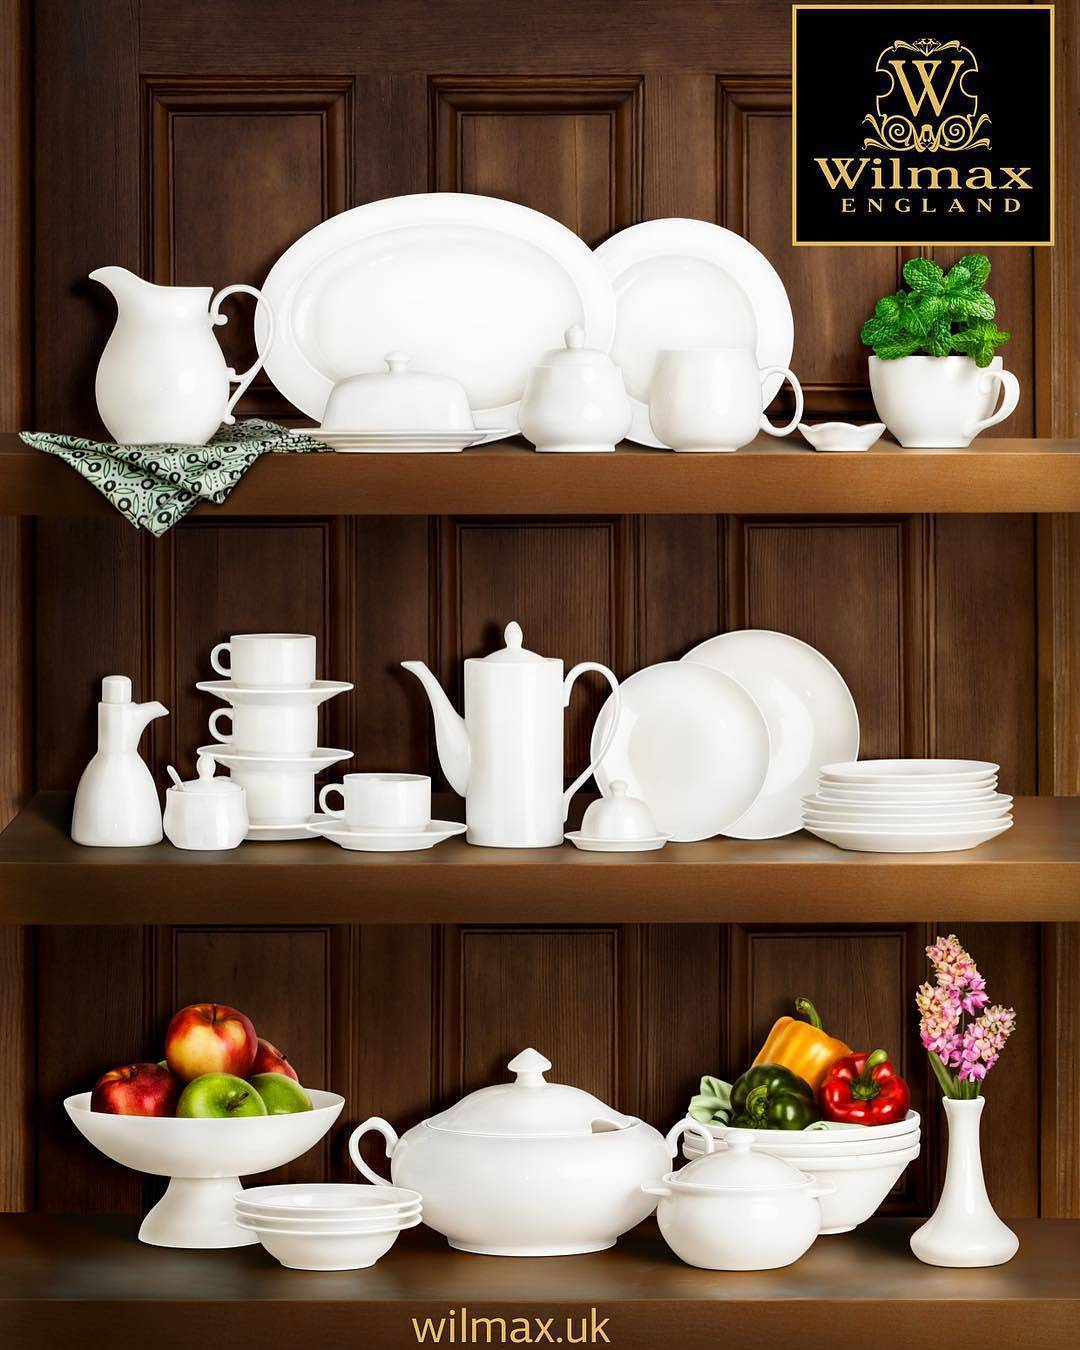 FINE PORCELAIN BOWL  7"